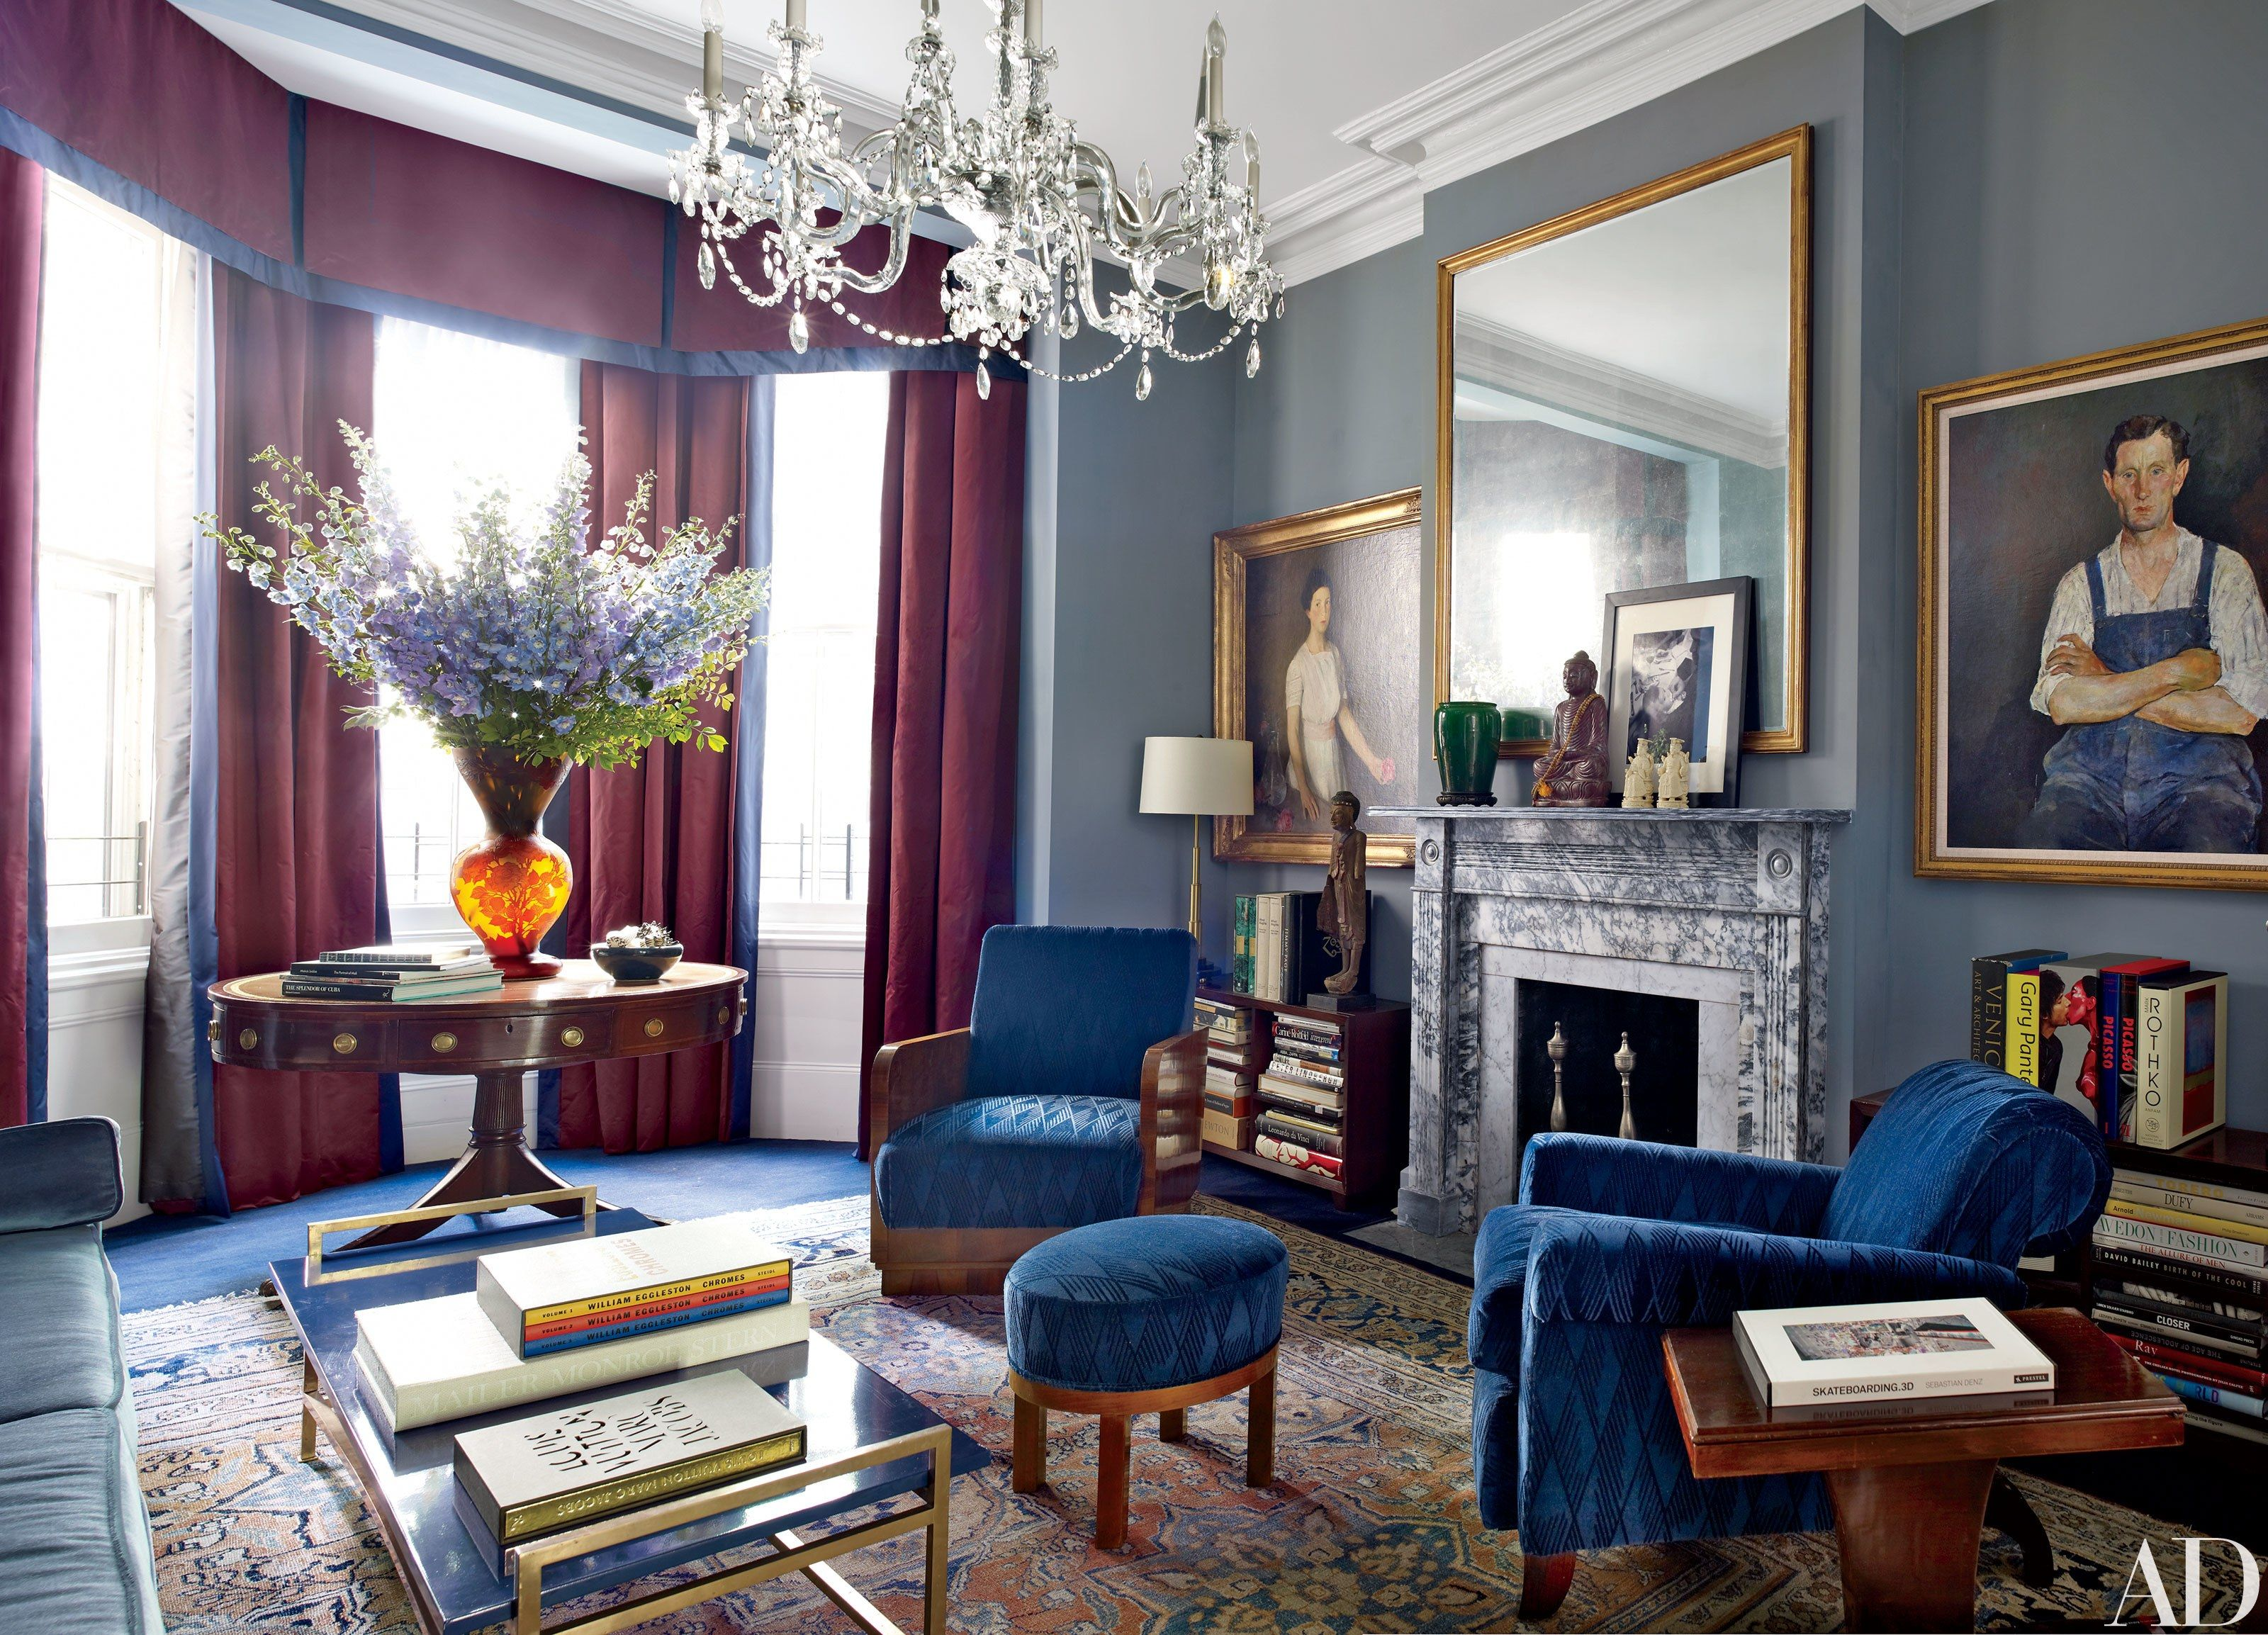 Studio reed jonathan reed s spare crafted interior design - Look Inside Robert Duffy S Historic Manhattan Townhouse